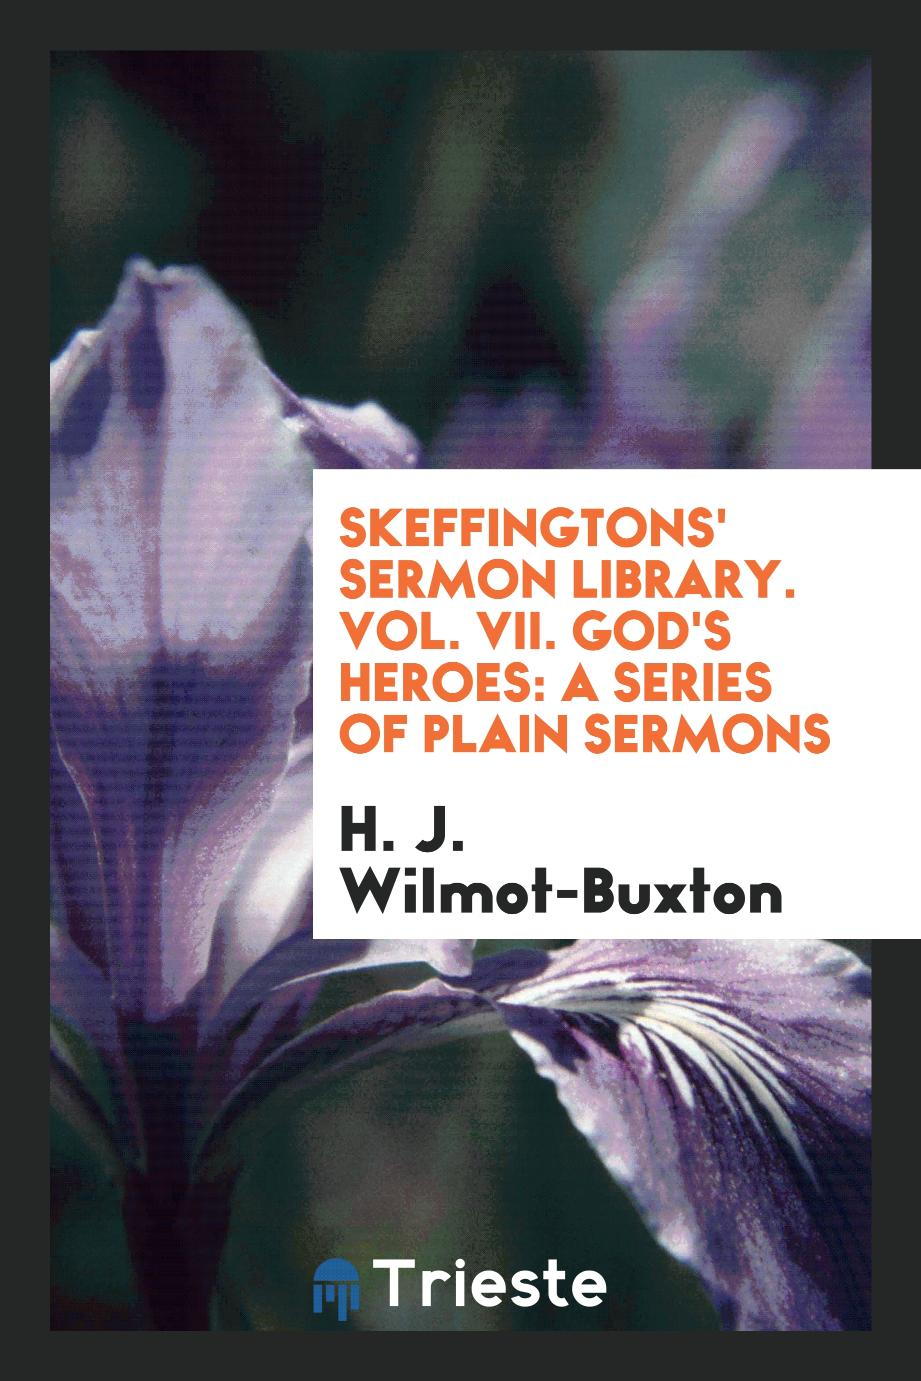 Skeffingtons' Sermon Library. Vol. VII. God's Heroes: A Series of Plain Sermons